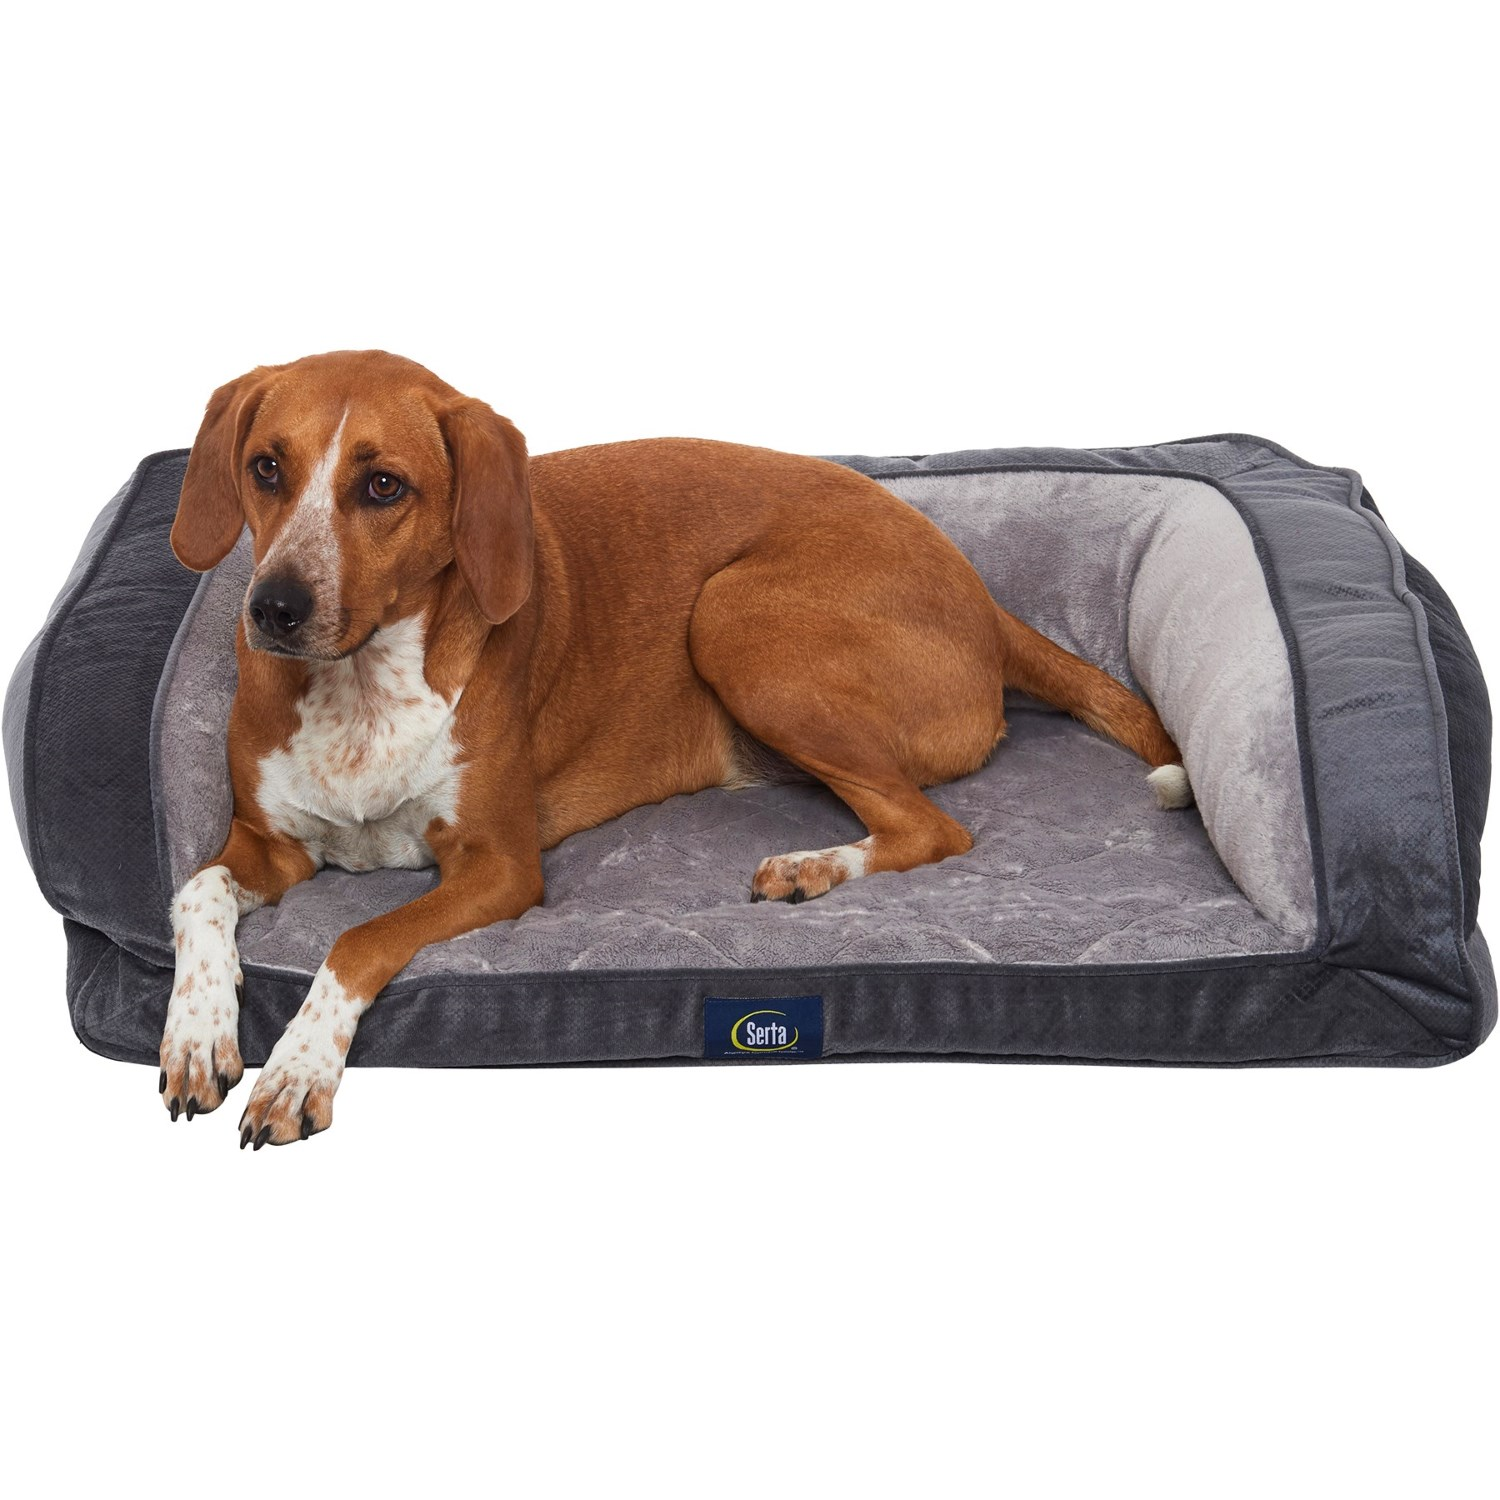 Sensational Serta Charcoal Quilted Couch Dog Bed 39X28 Save 23 Machost Co Dining Chair Design Ideas Machostcouk